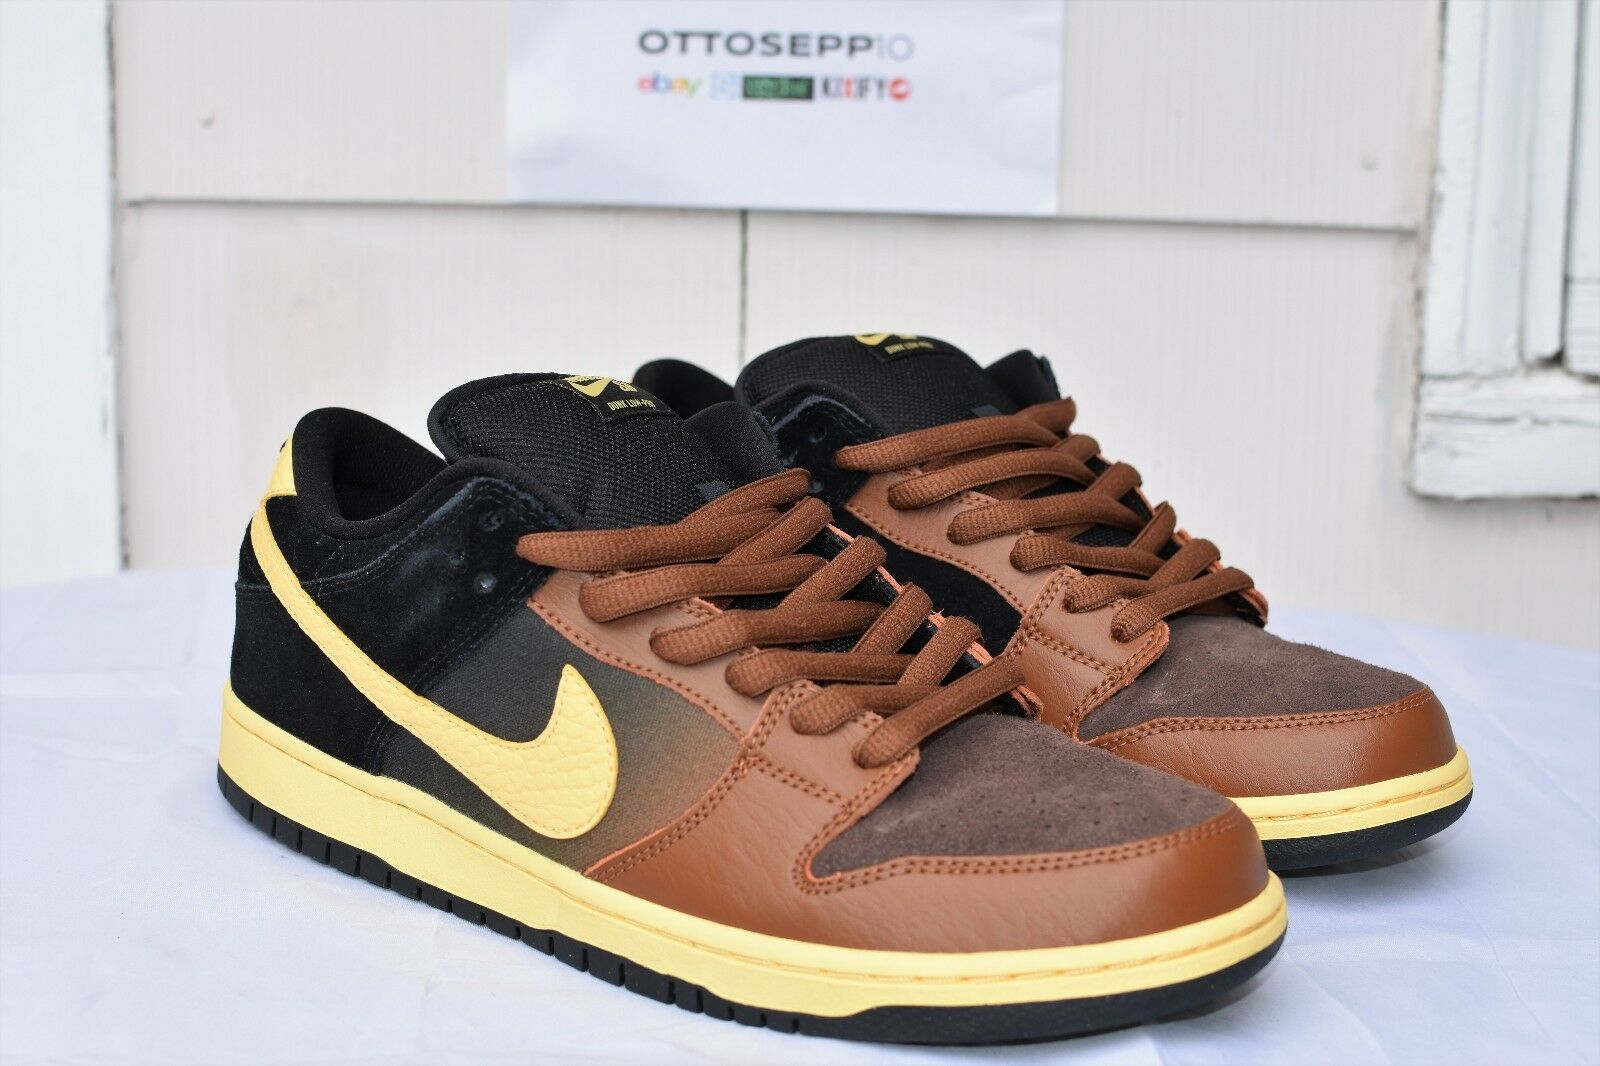 11 NIKE SB DUNK Black Tan Guiness beer pecan chamois vtg qs low ck high mid pro Special limited time